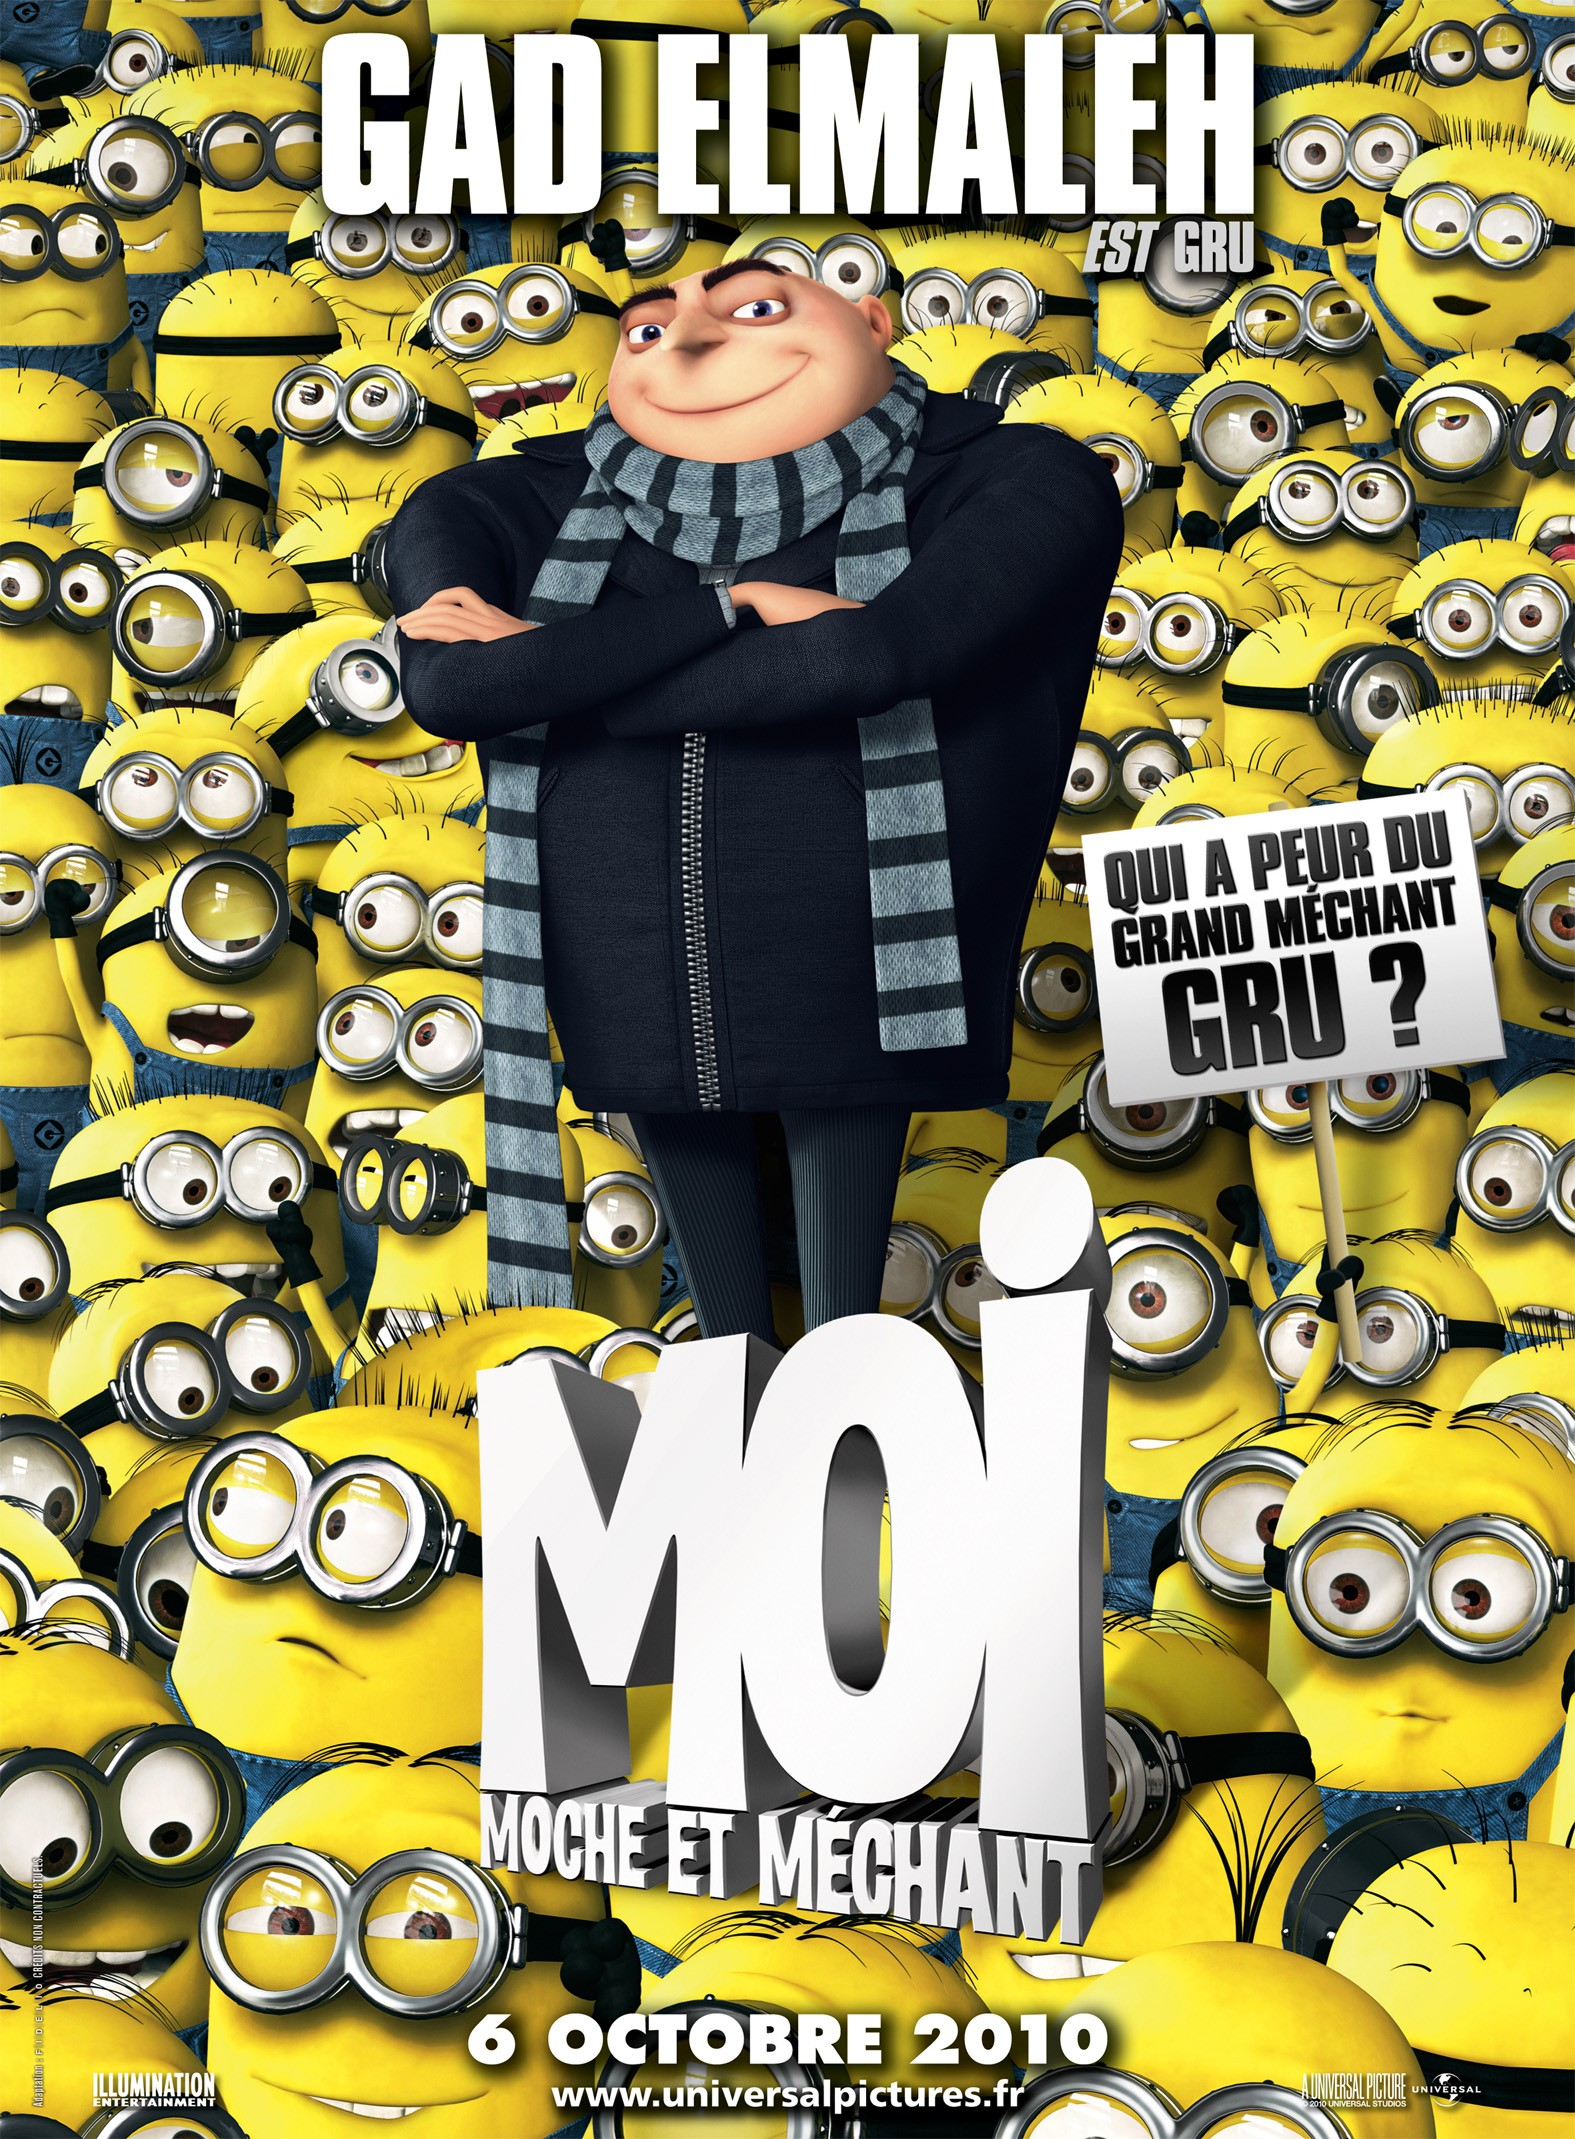 Moi, moche et méchant [DVDRiP] [FRENCH] [MULTI]